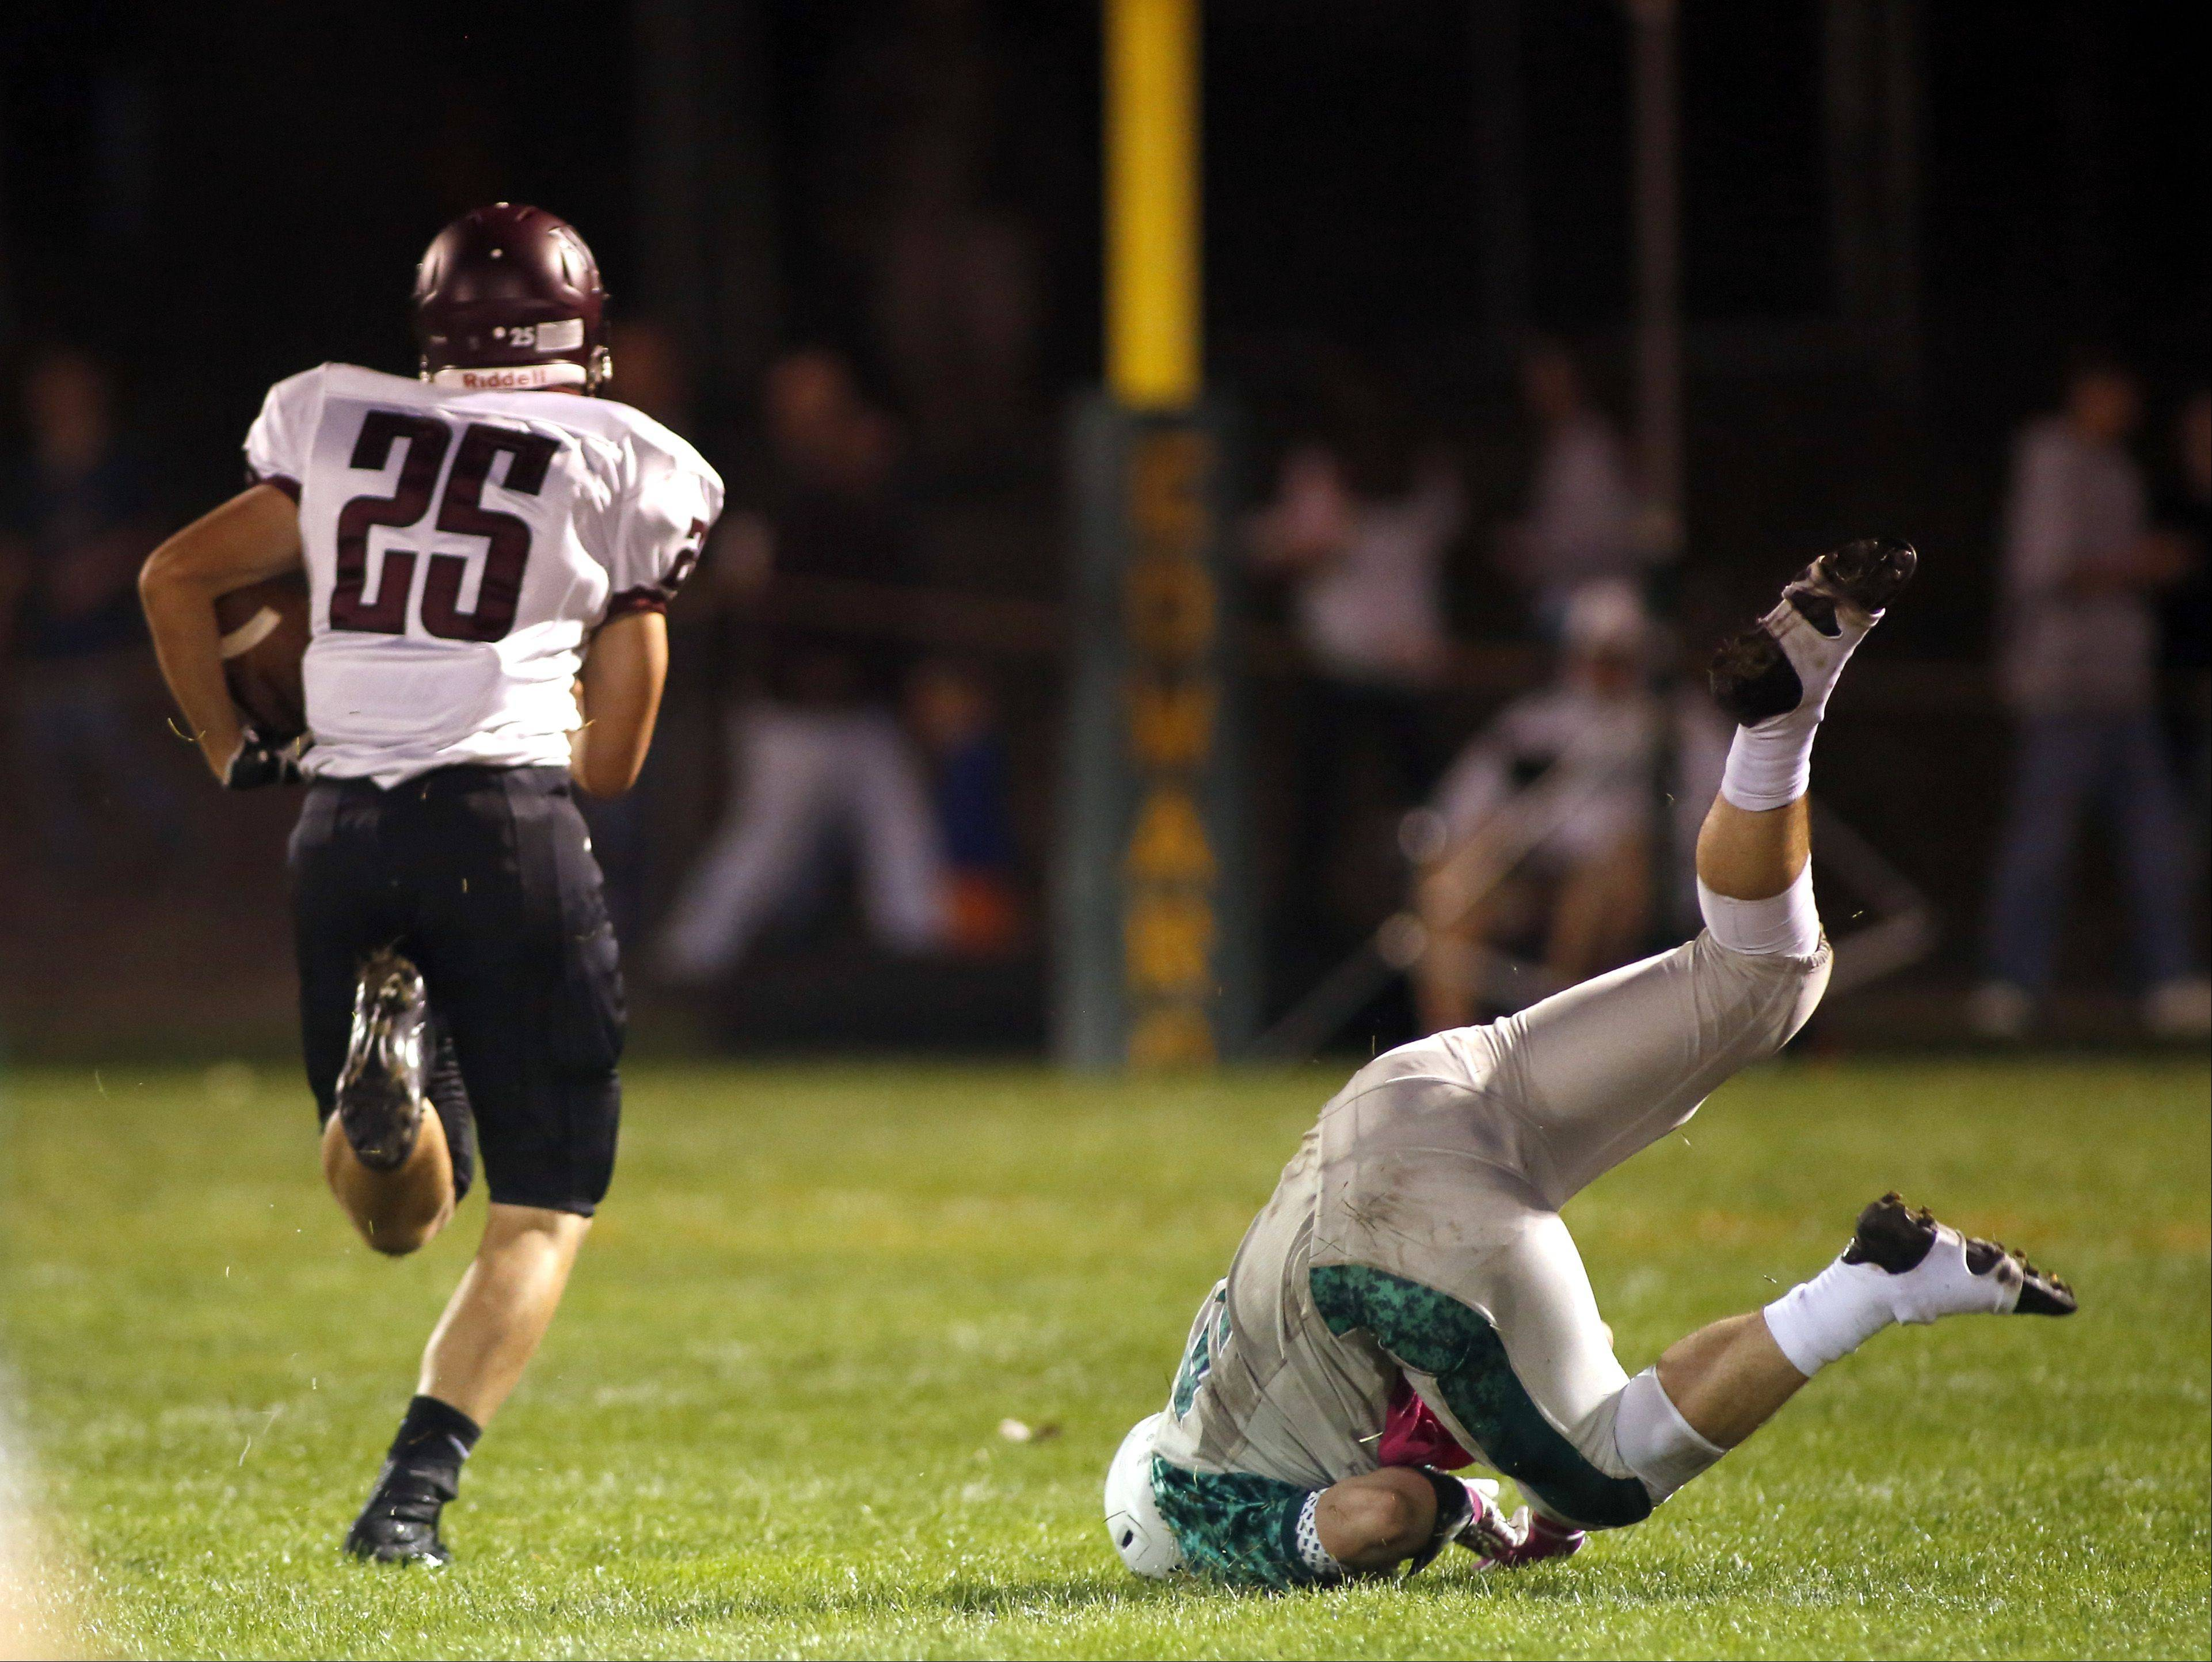 Wheaton Academy's Marino Costello heads in for a touchdown.